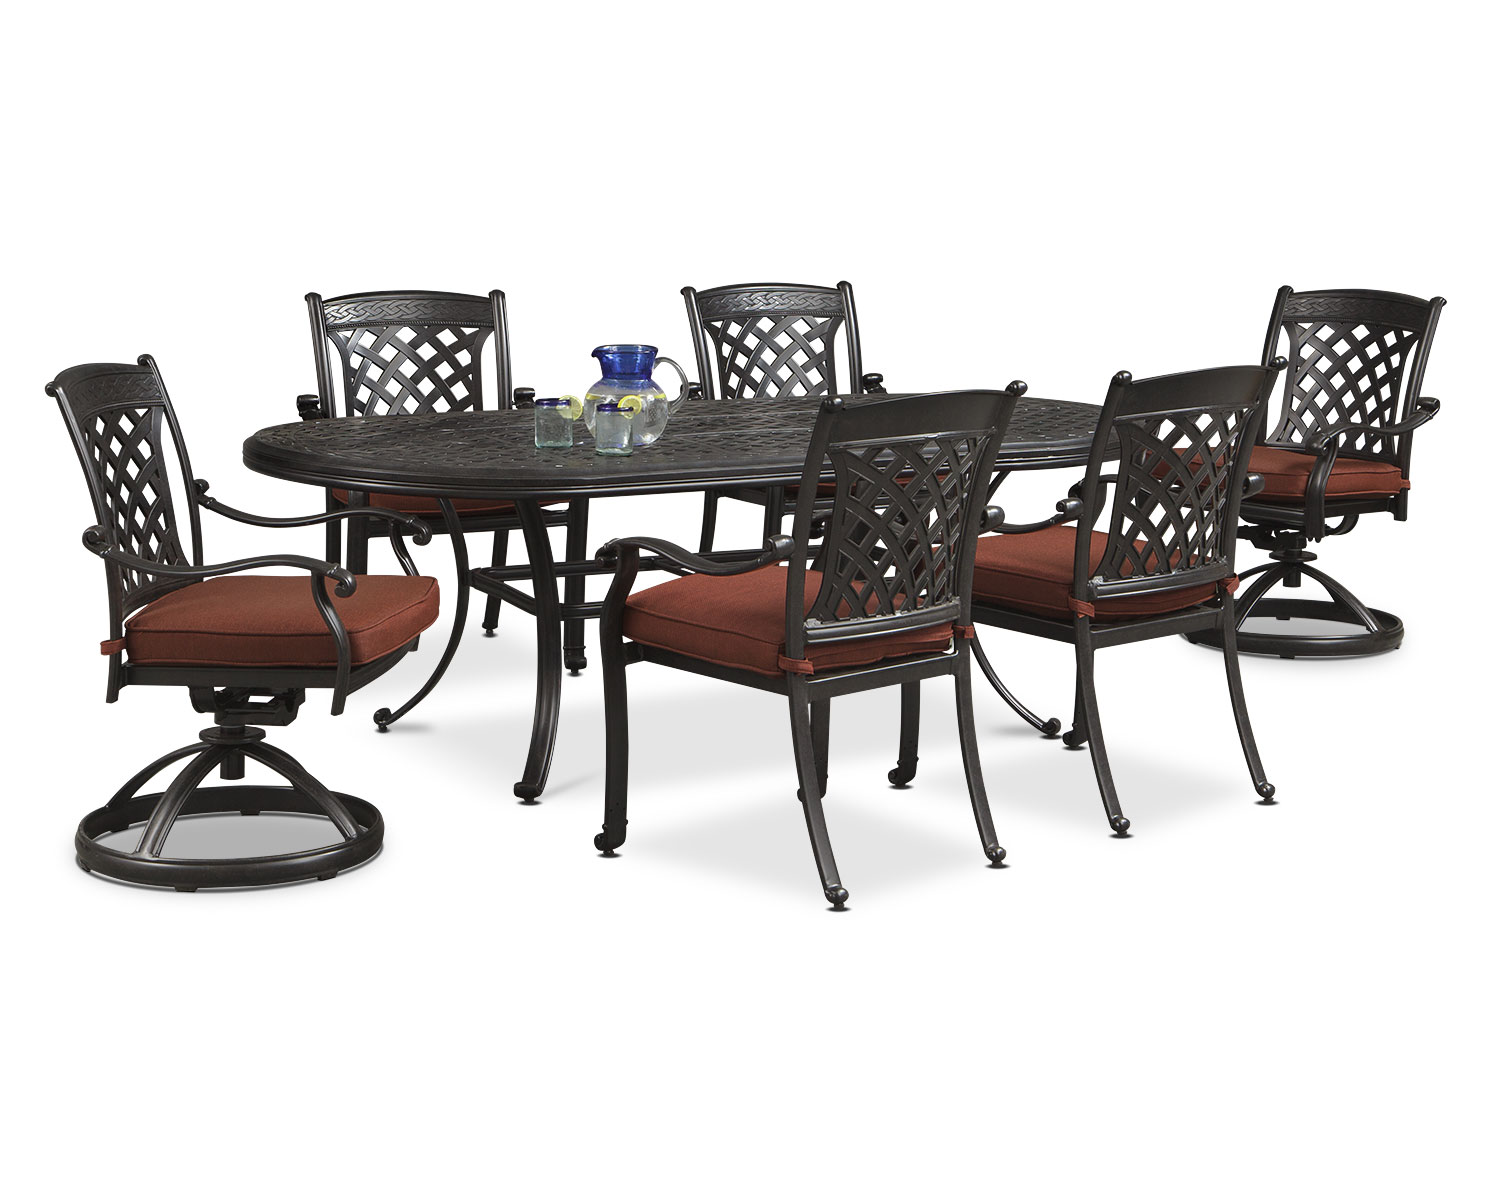 [The Glades Outdoor Dining Room Collection]